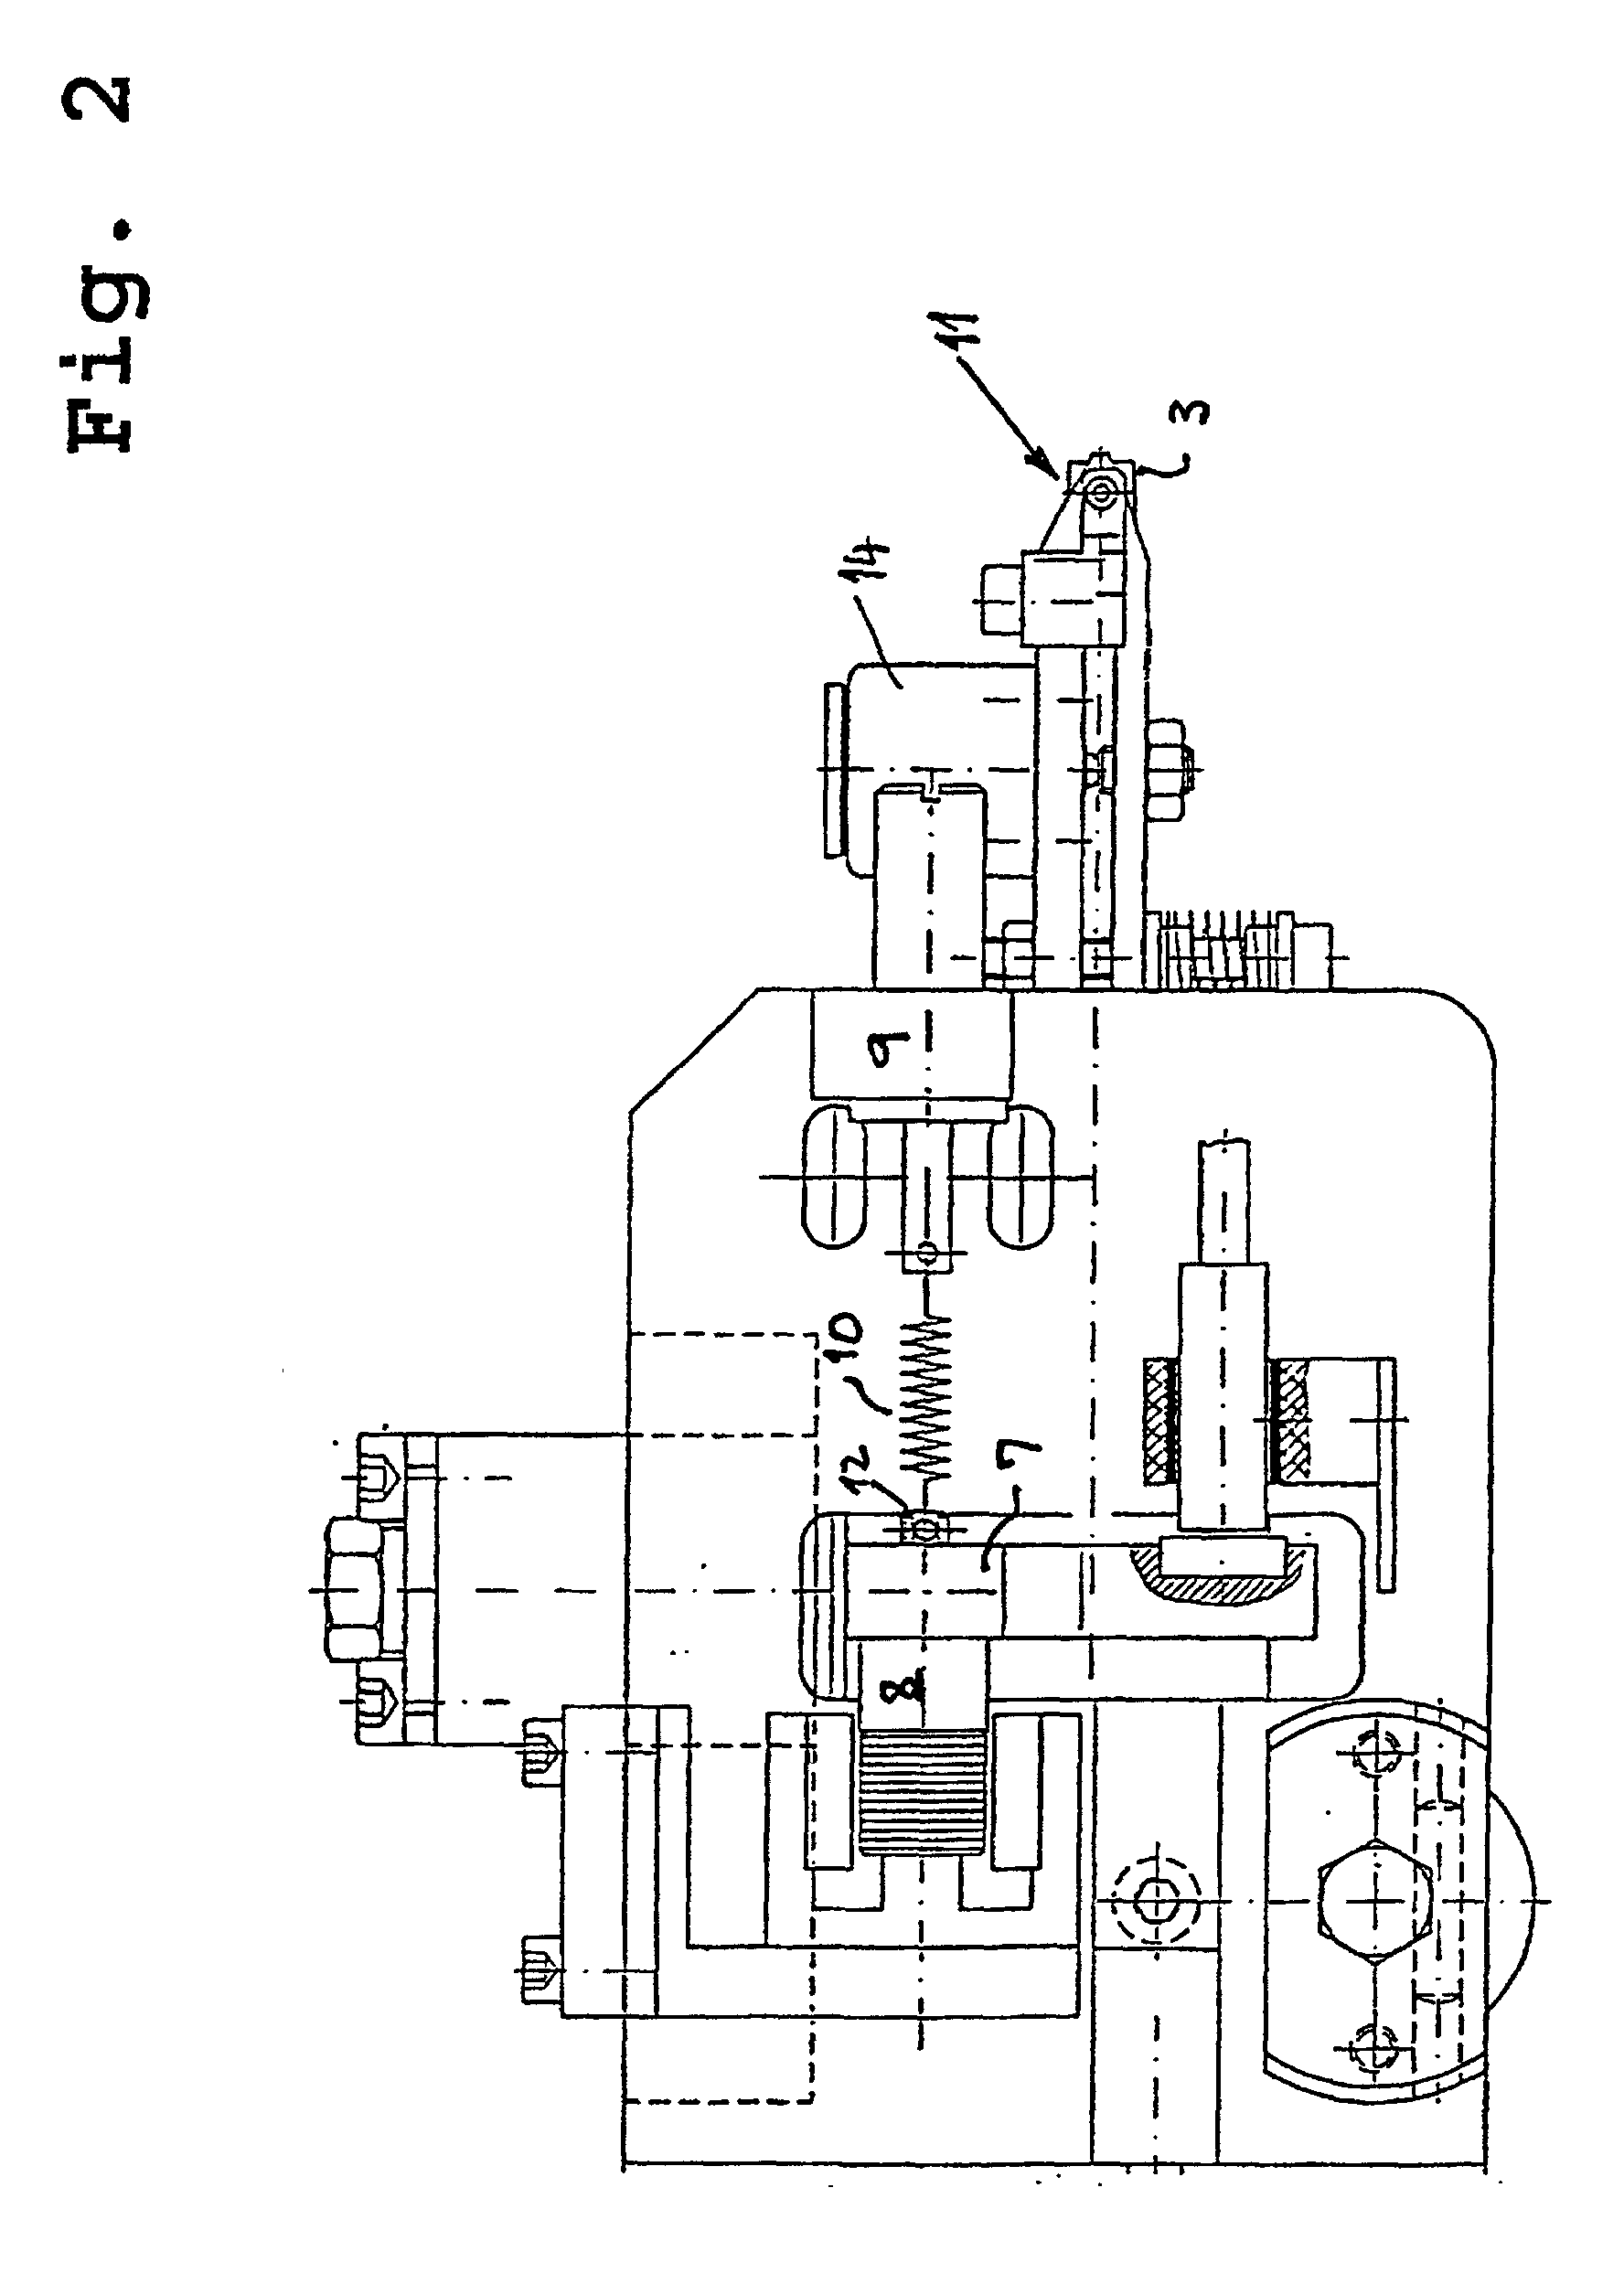 patent ep0857535b1 - bonding head for a wire bonding machine